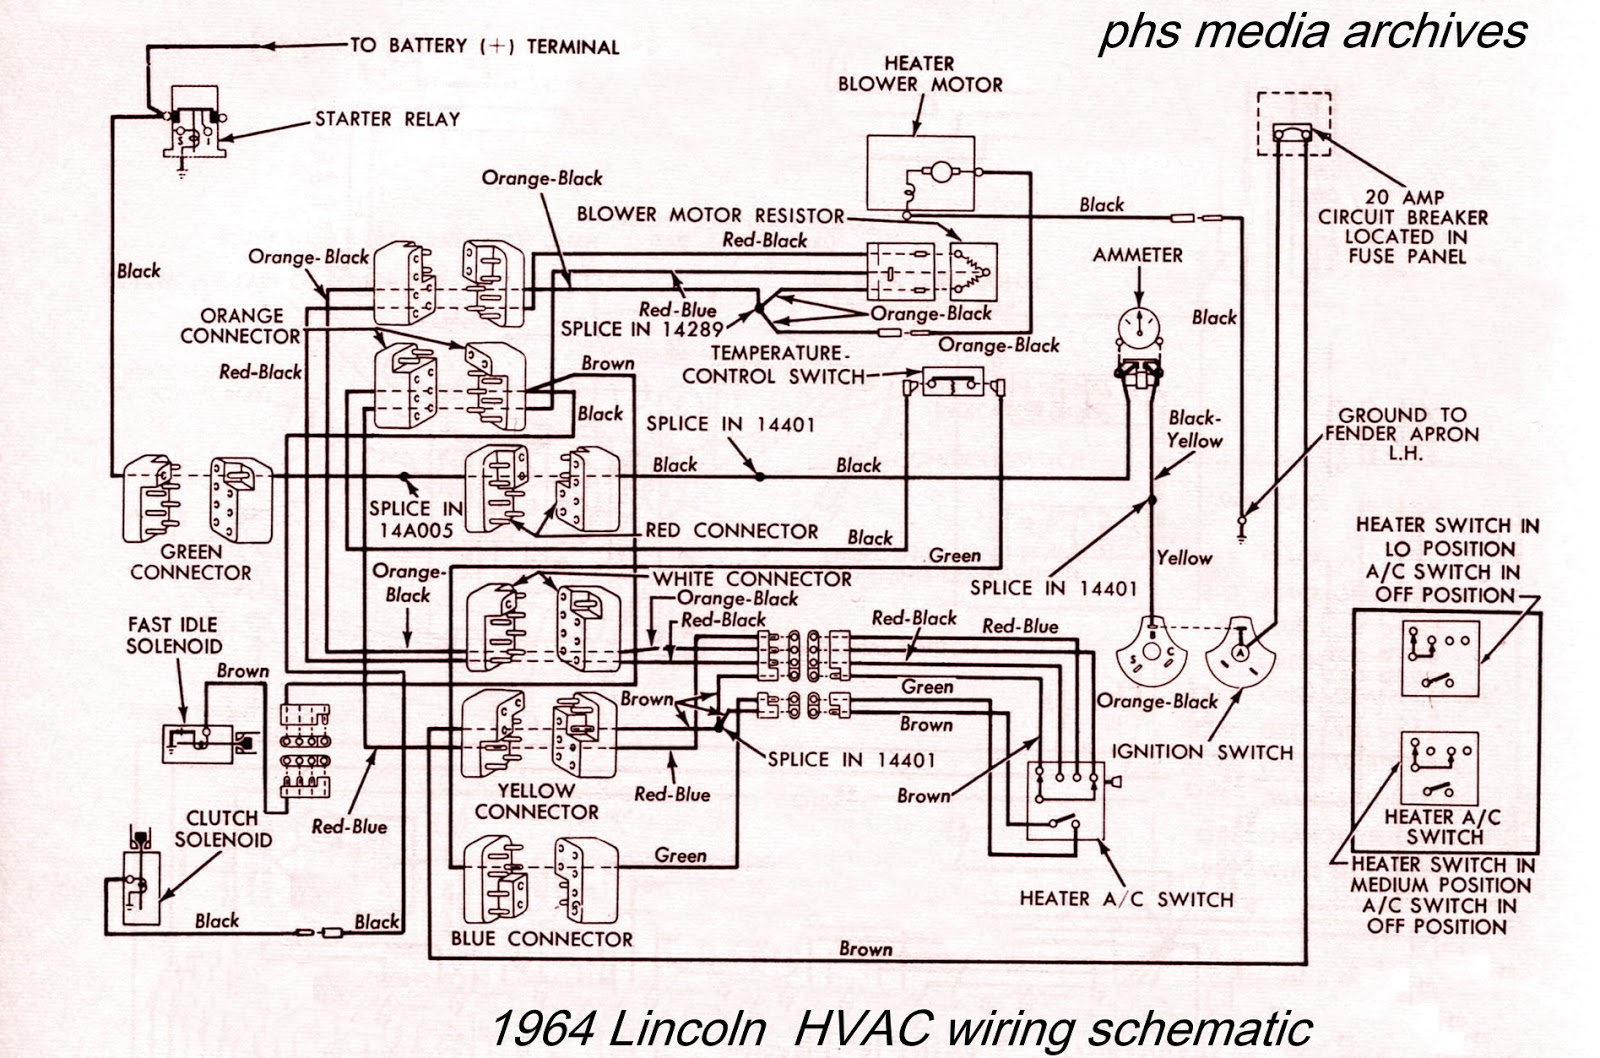 lincoln wiring diagrams nice place to get wiring diagram u2022 rh usxcleague com 2000 lincoln navigator [ 1600 x 1058 Pixel ]